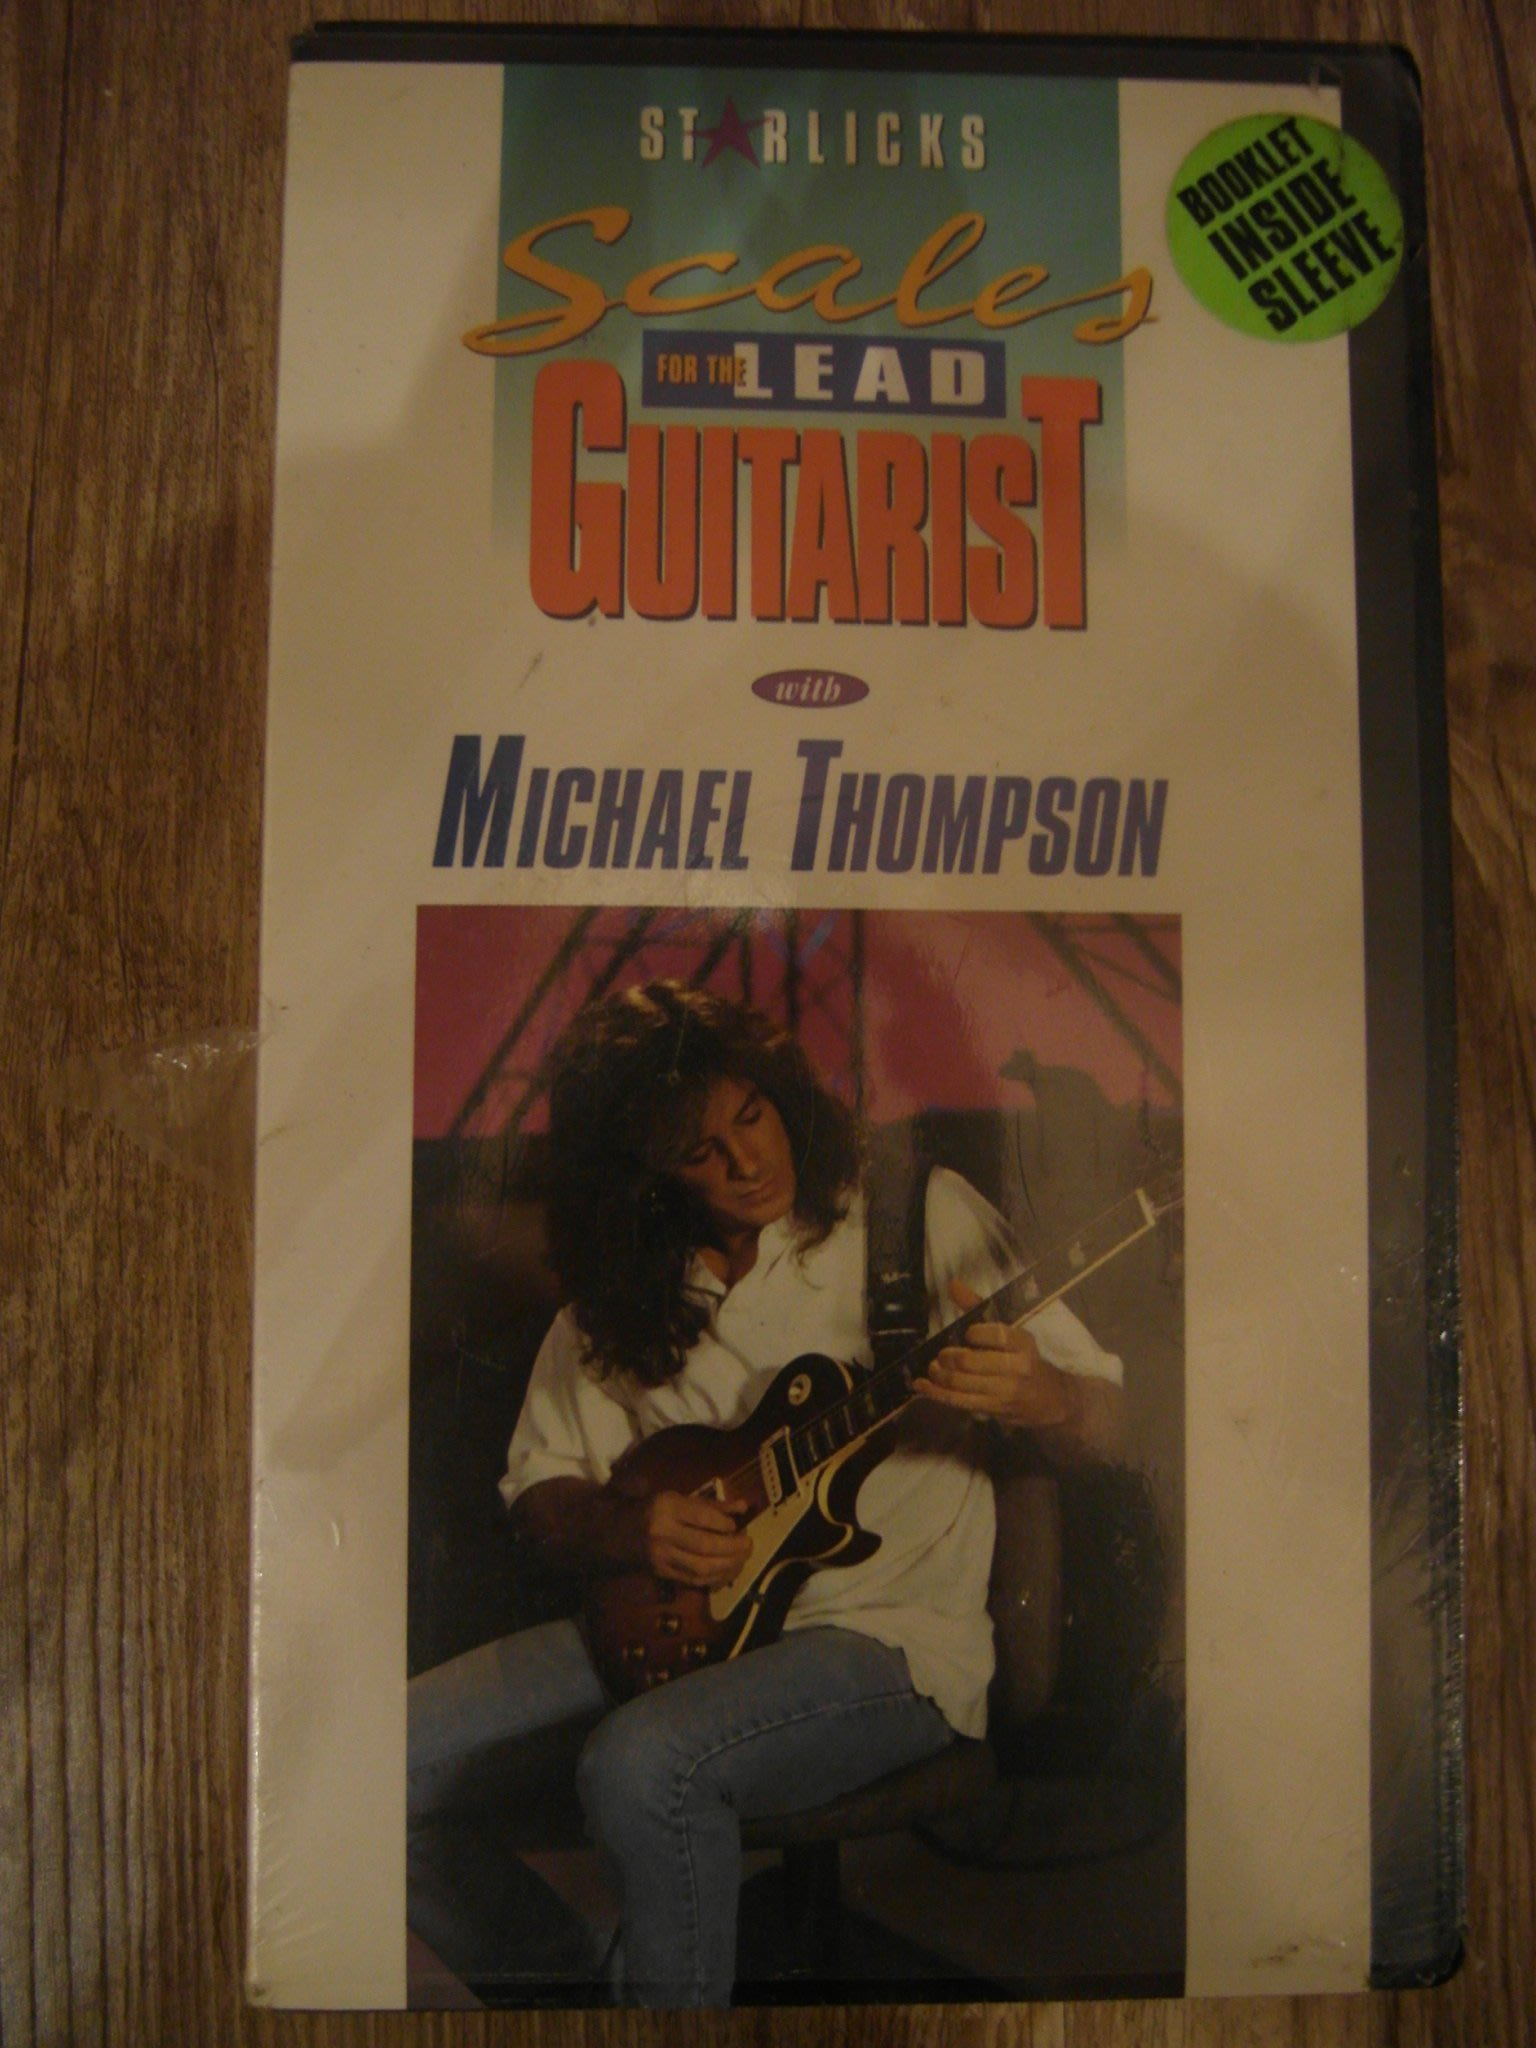 Scale for the lead guitarist with Michael Thompson